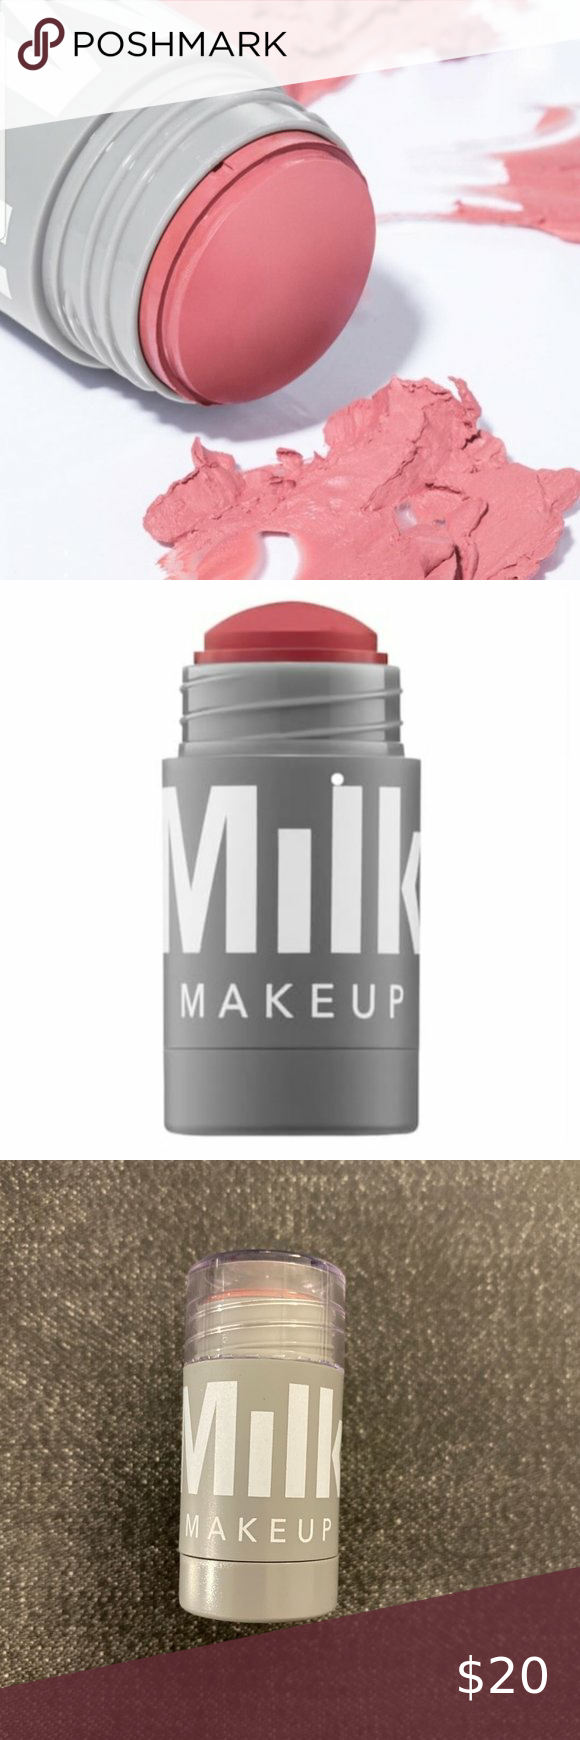 NWT] MILK Makeup Lip + Cheek in Werk New, never opened